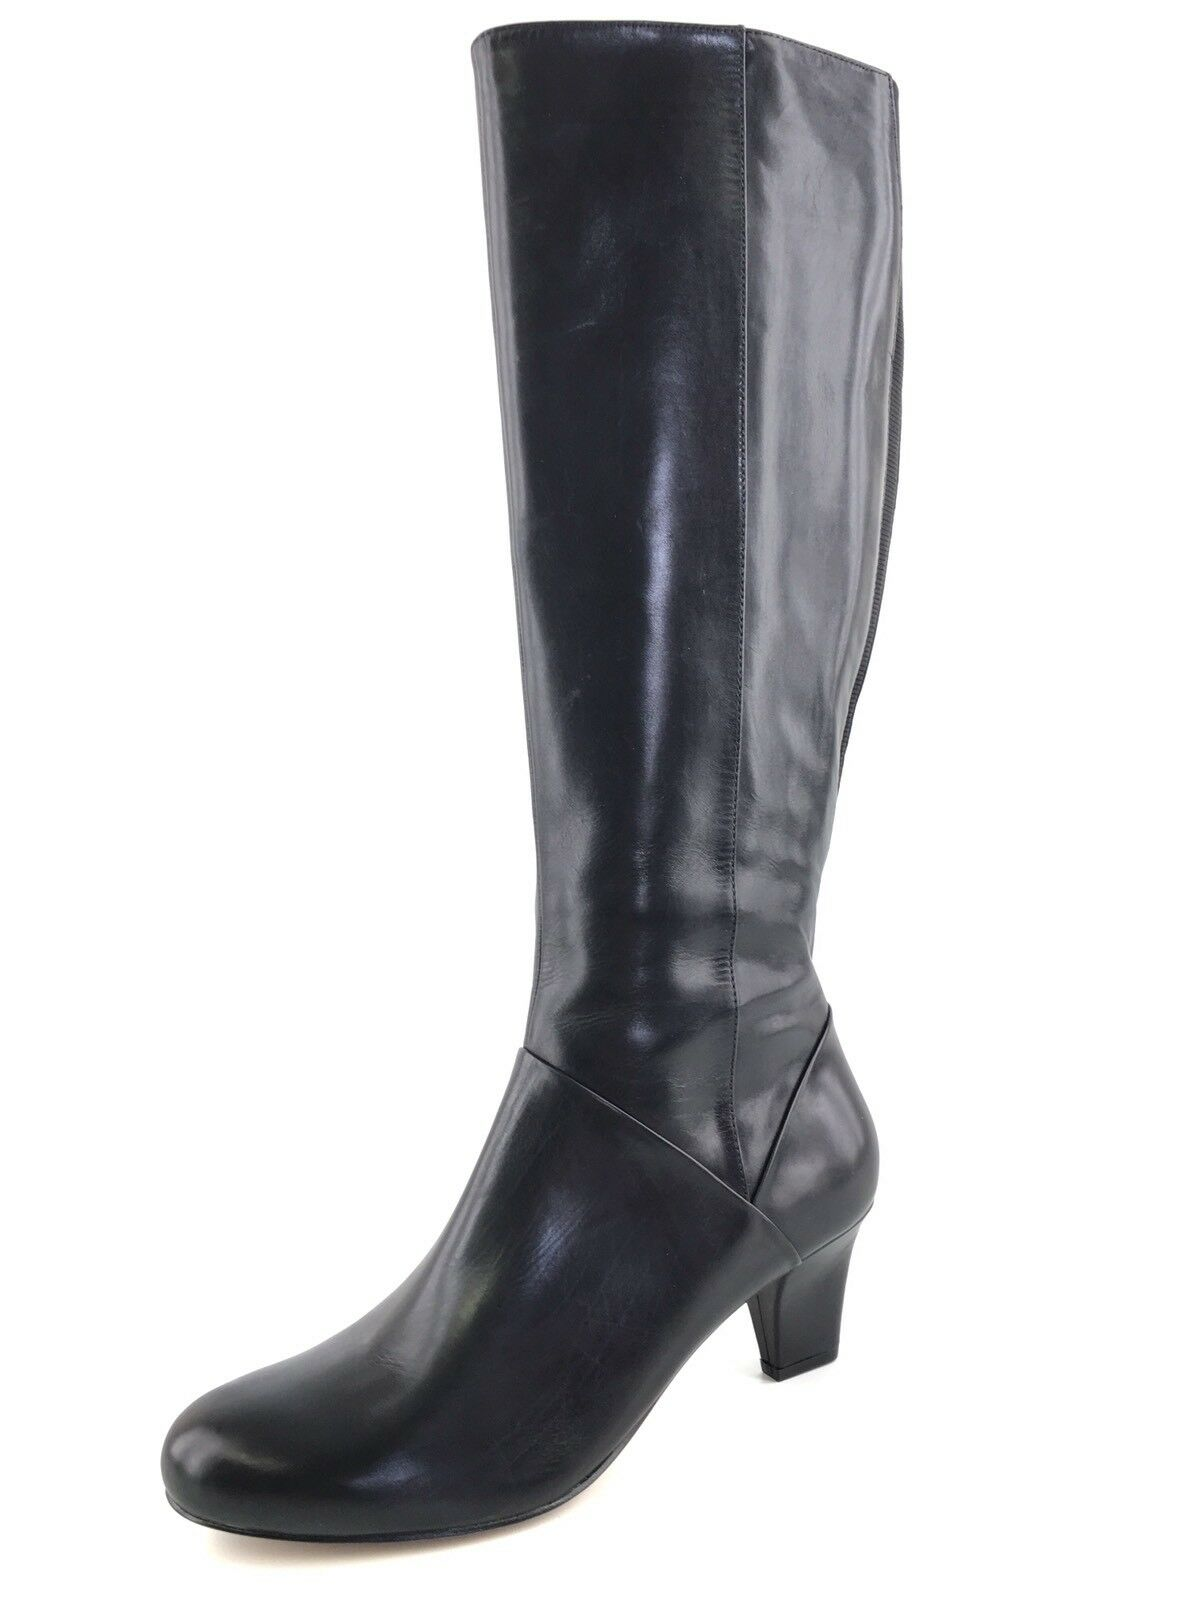 Trotters Lyra Black Leather Knee High Fashion Boots Women's Size 5.5 M*